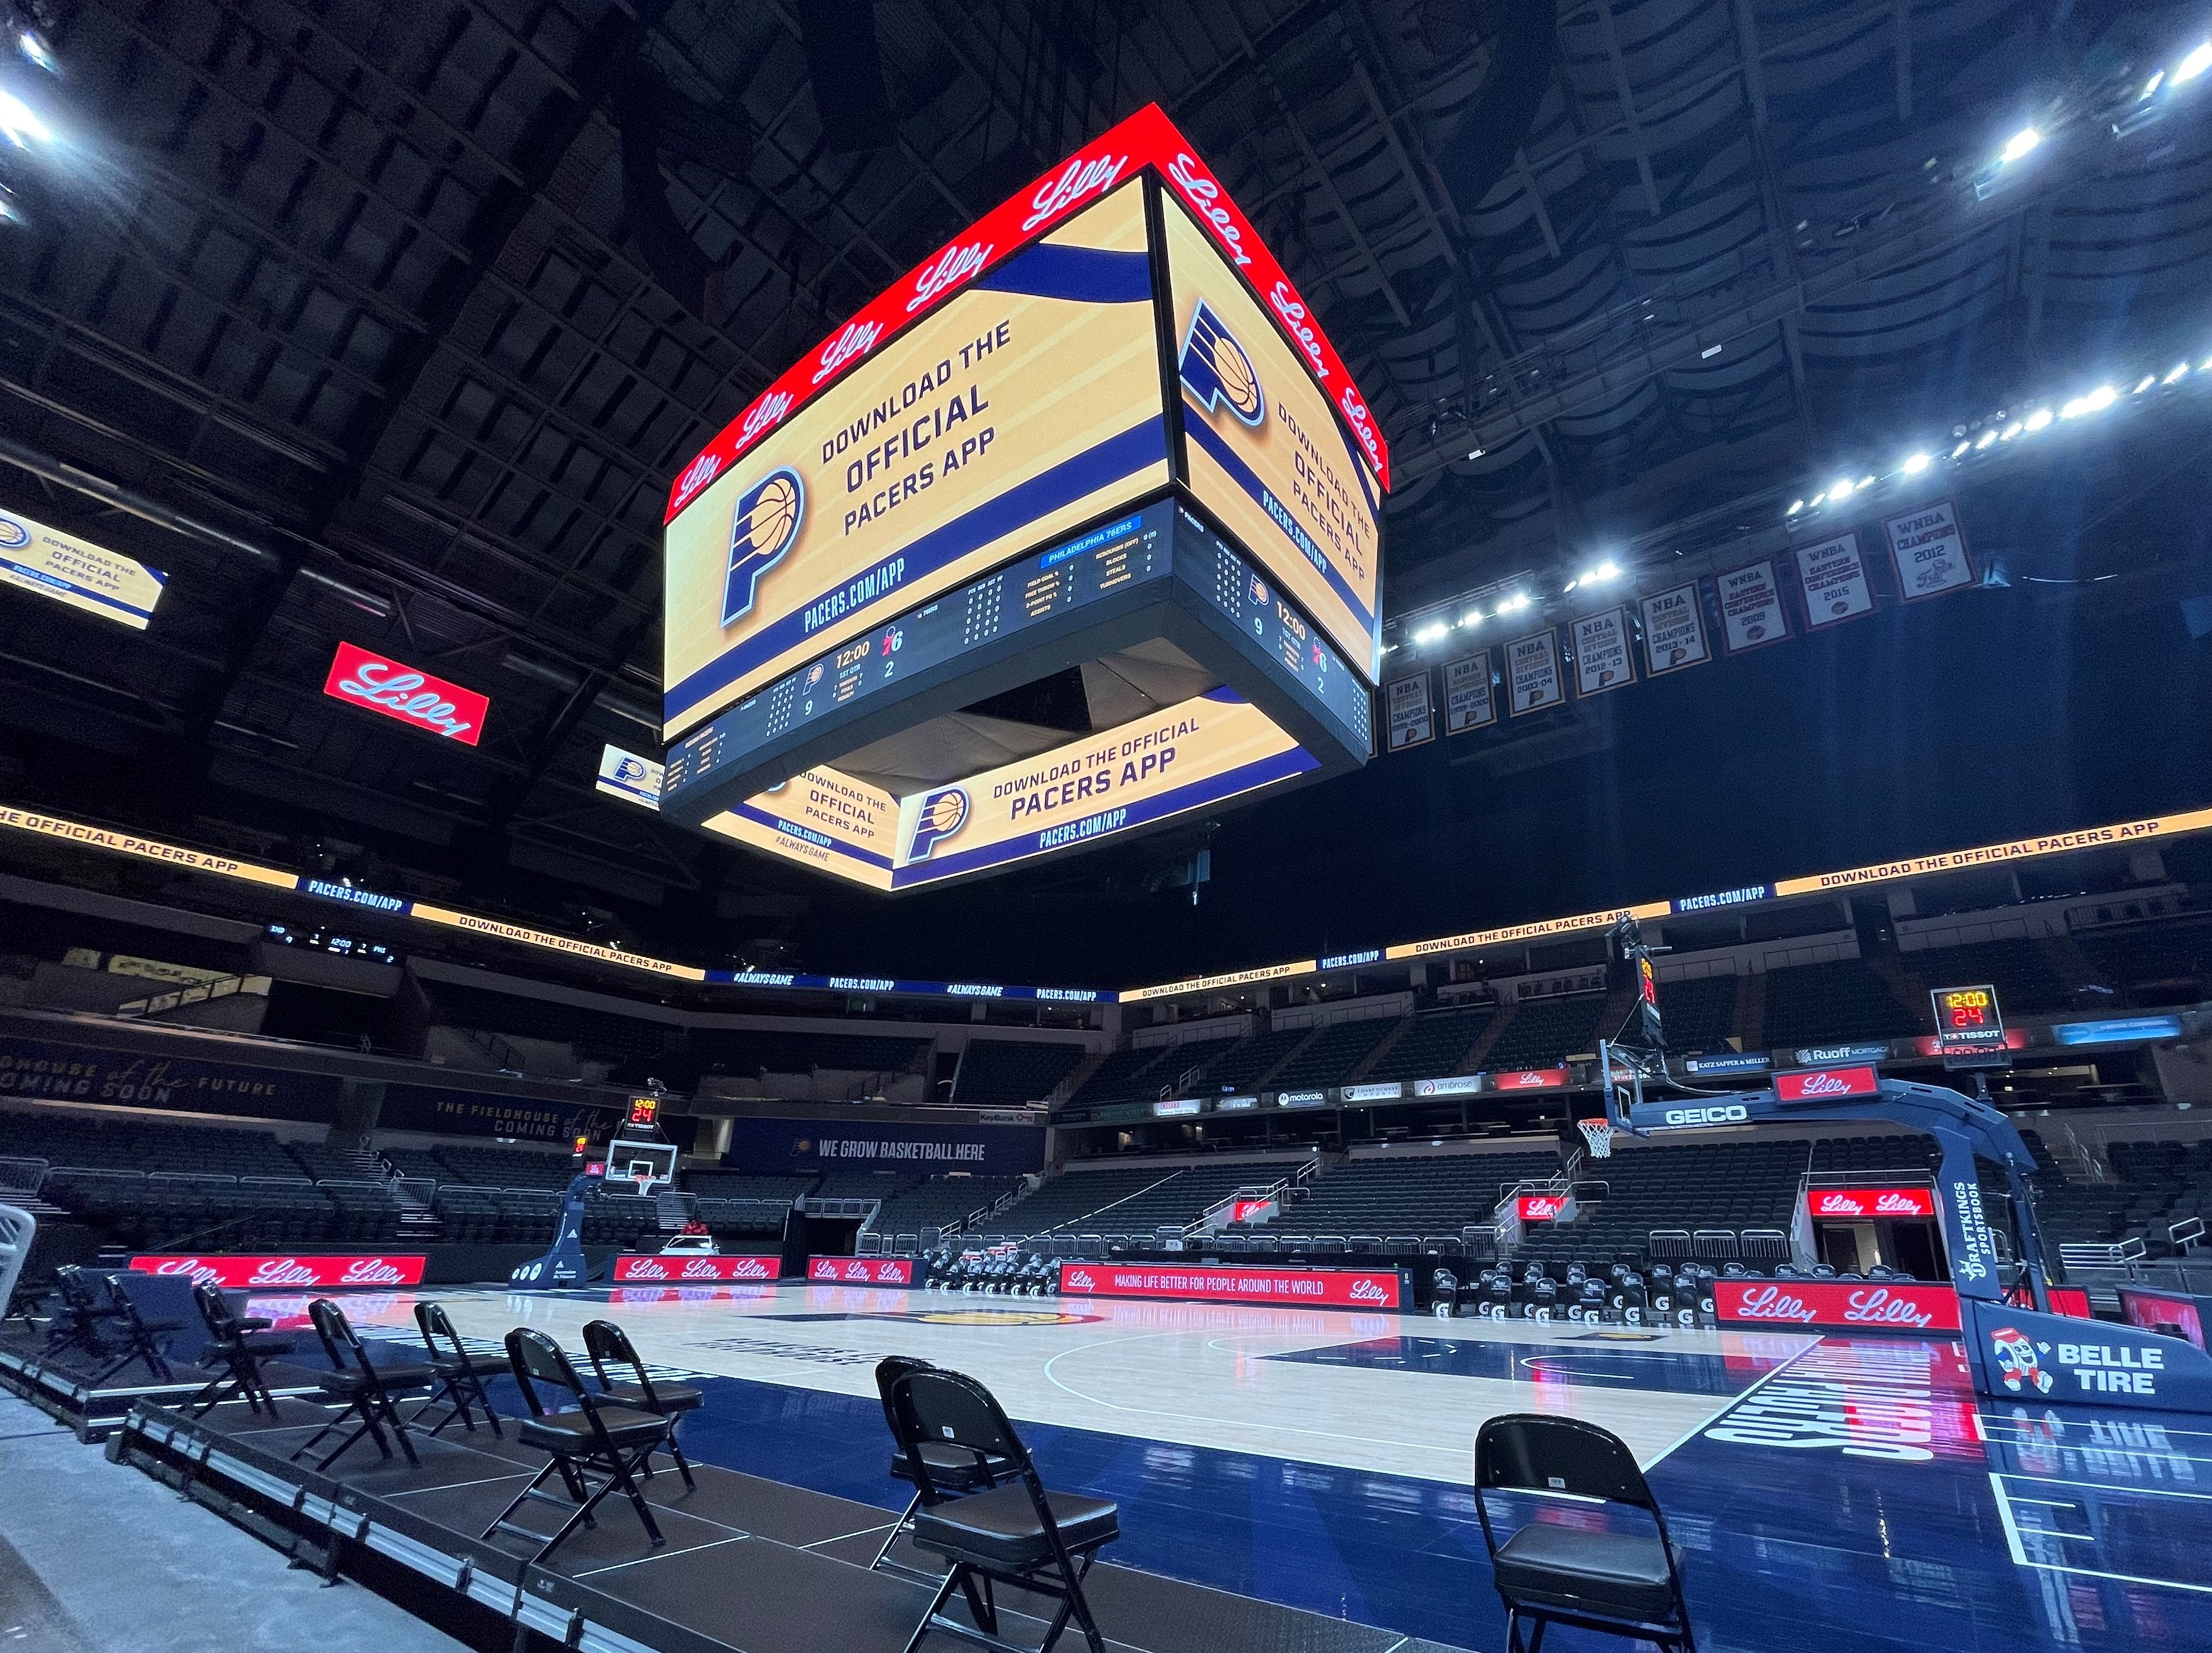 Total Venue Display System - Credit: Pacers Sports & Entertainment